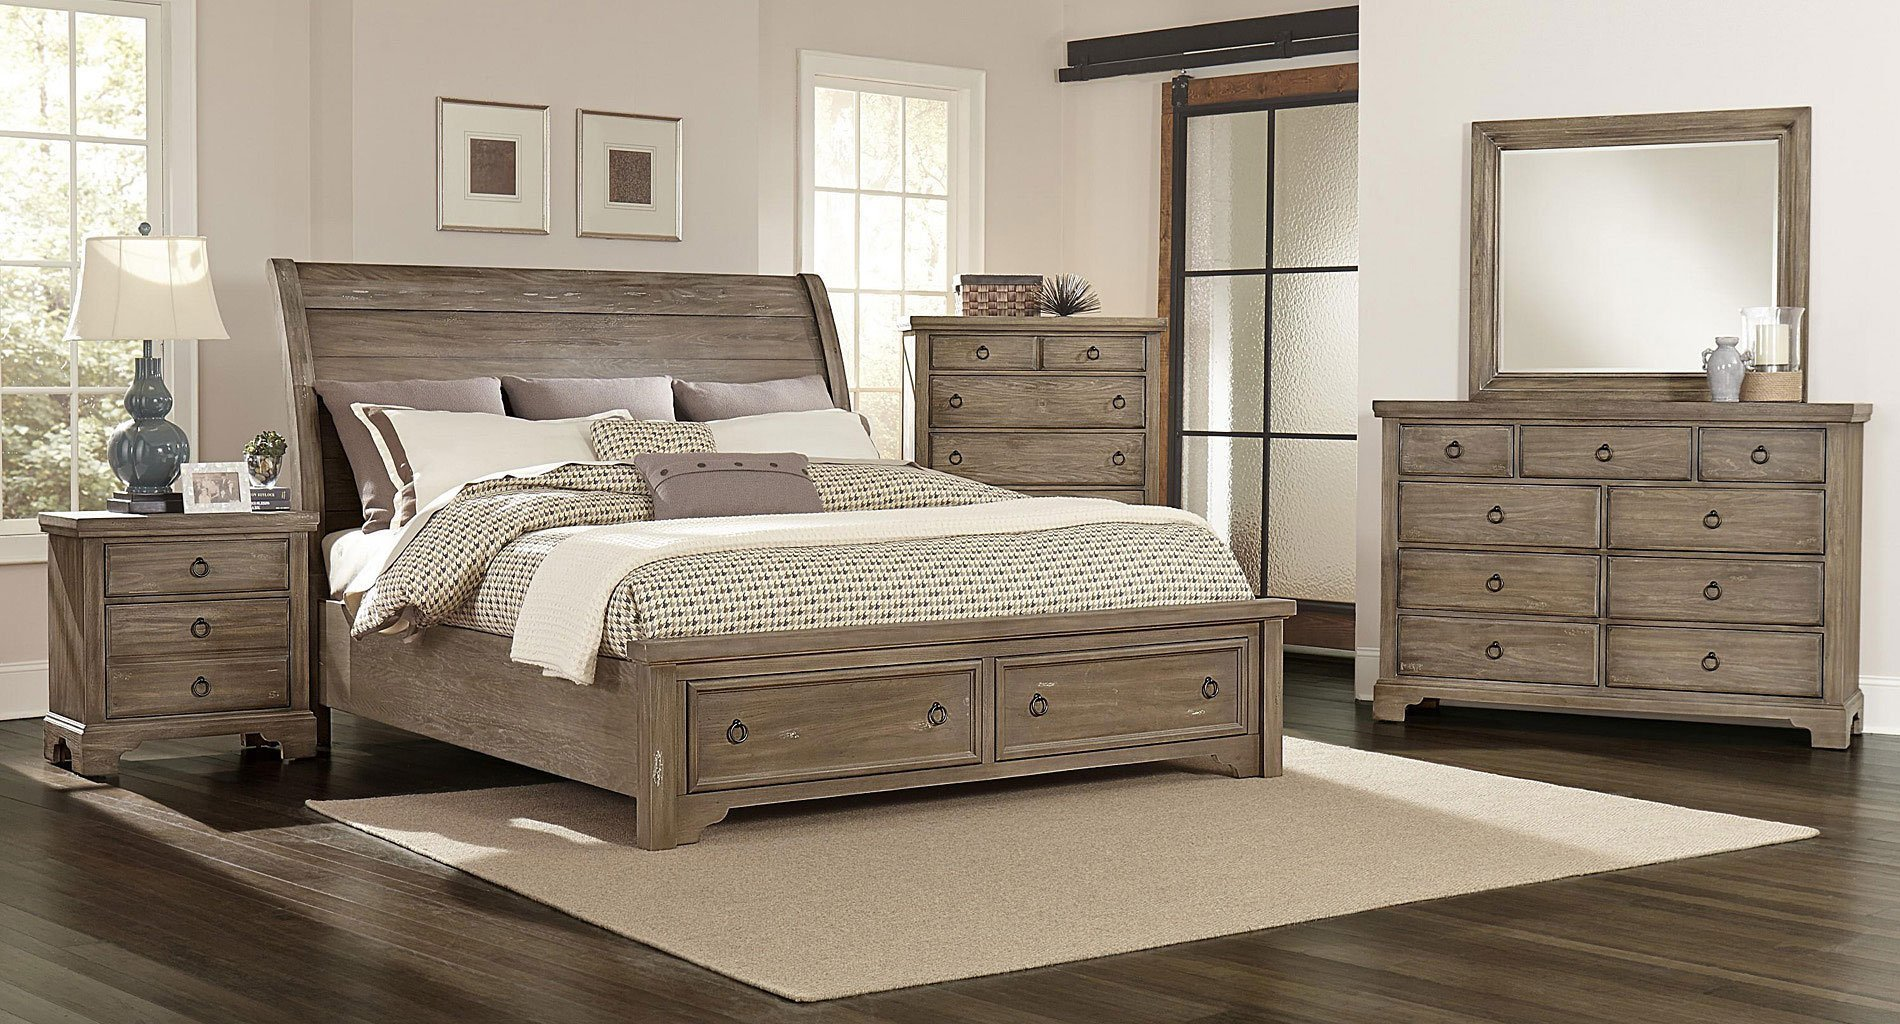 Best Whiskey Barrel Storage Bedroom Set Rustic Gray Vaughan Bassett 1 Reviews Furniture Cart With Pictures